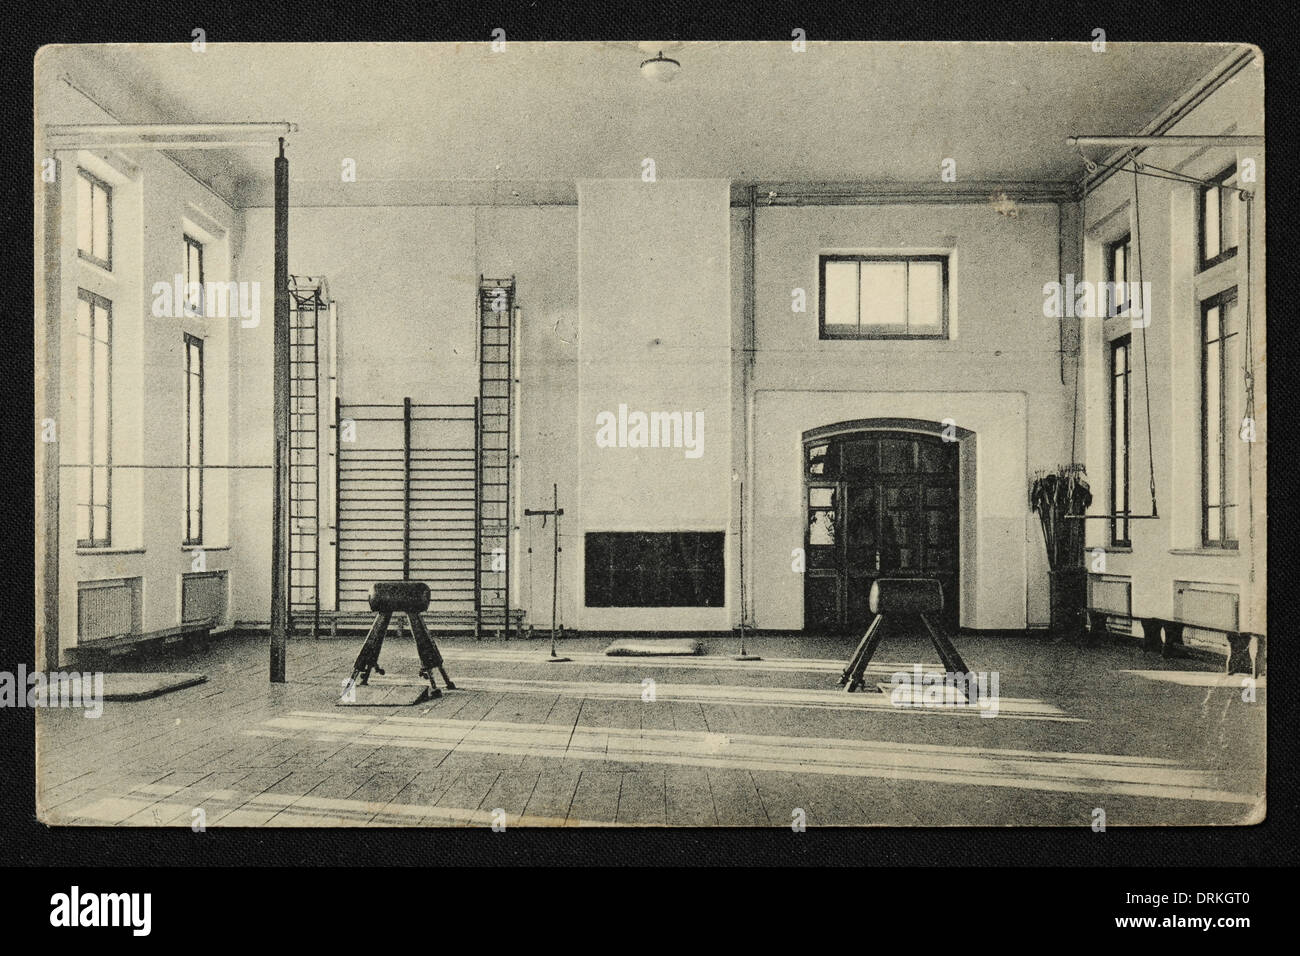 Gym in the Men's Gymnasium in Yekaterinburg, Russian Empire. Old postcard. - Stock Image